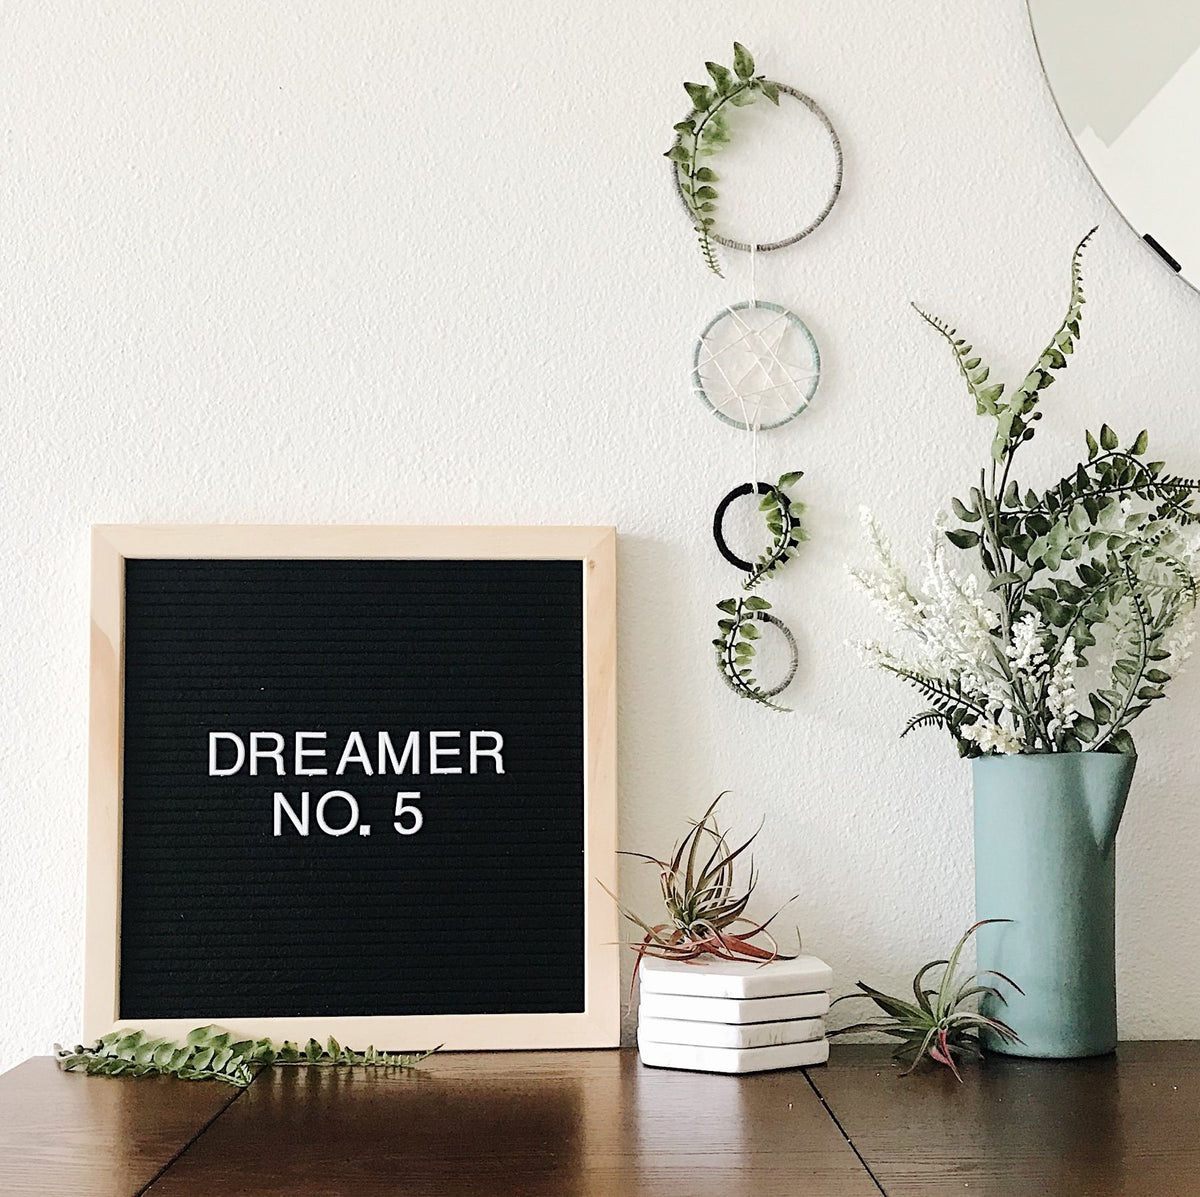 Dreamer No. 5 | 100 Days of Dreamers